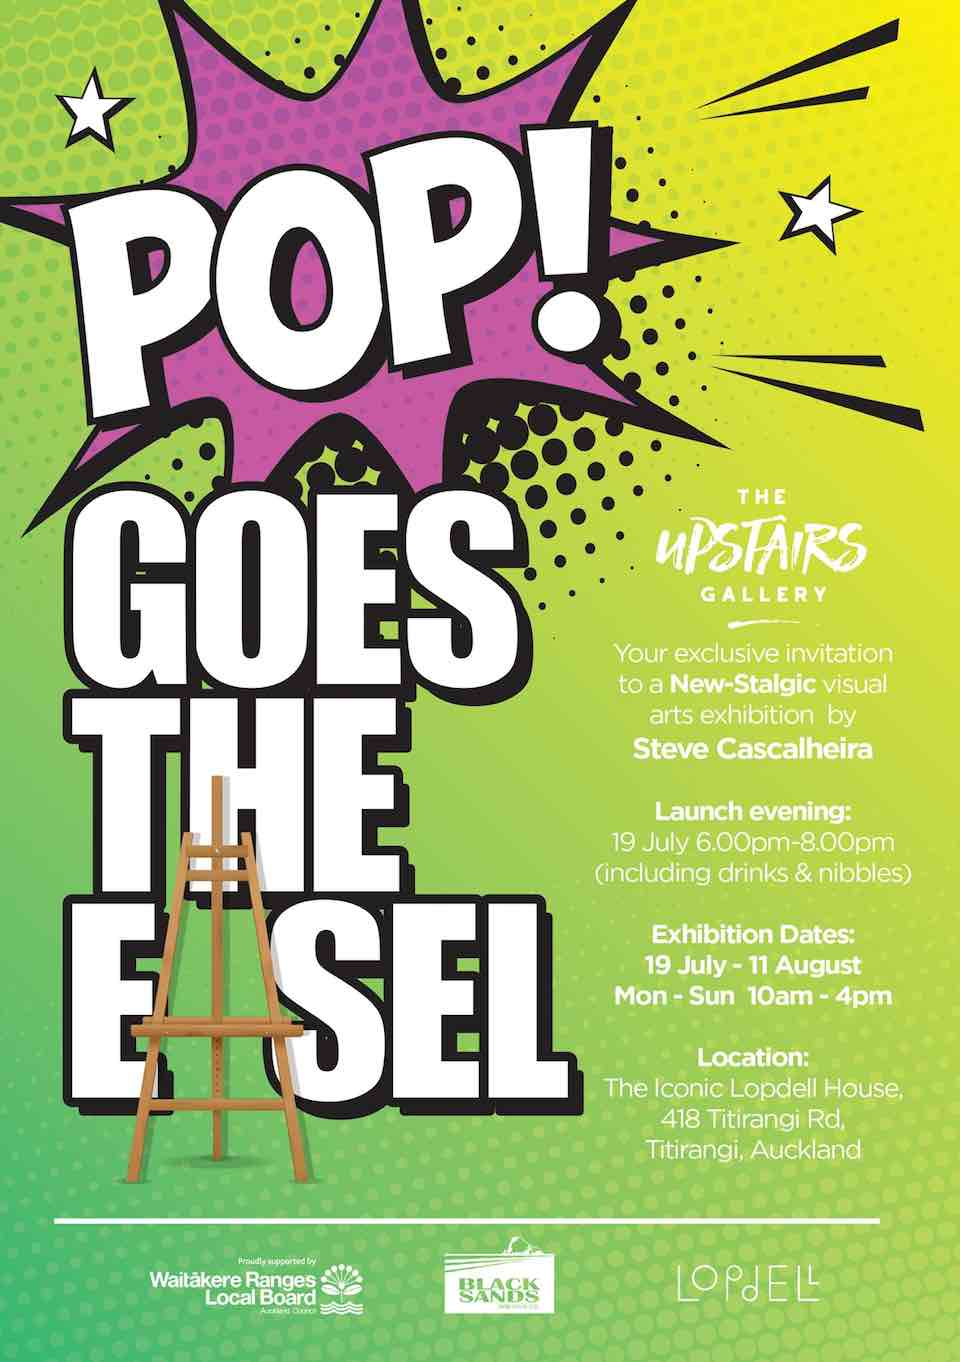 Pop Goes the Easel - Upstairs Gallery - Titirangi